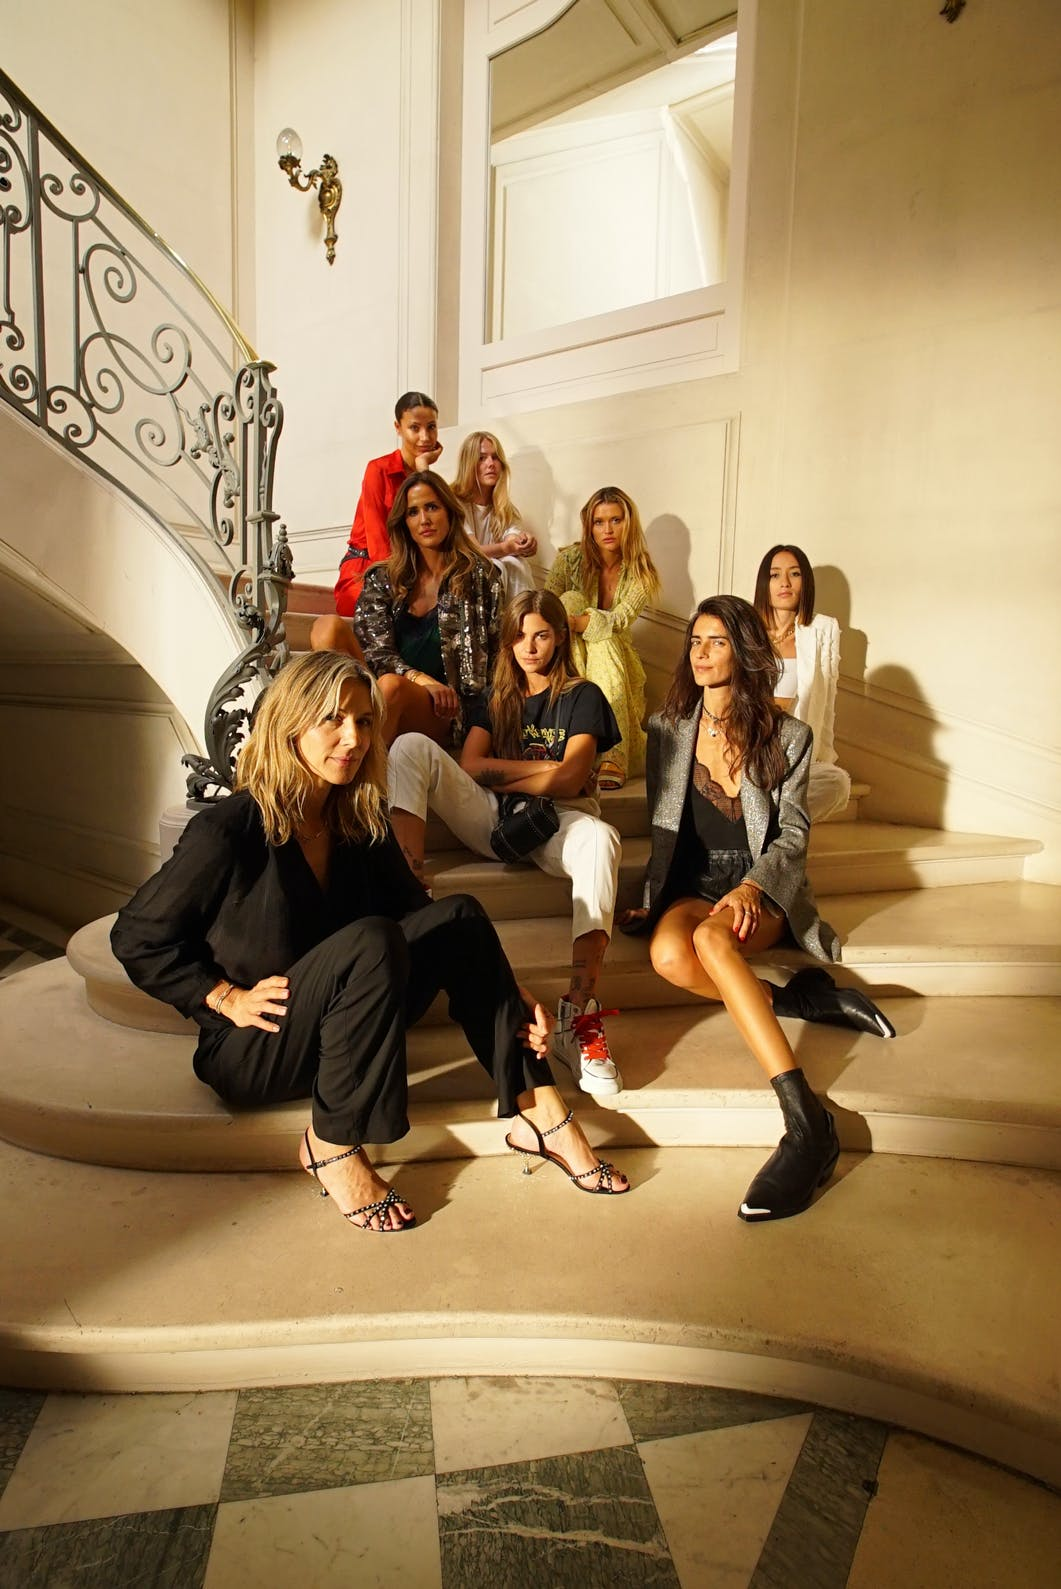 Zadig&Voltaire introduces members of the ZV TRIBE